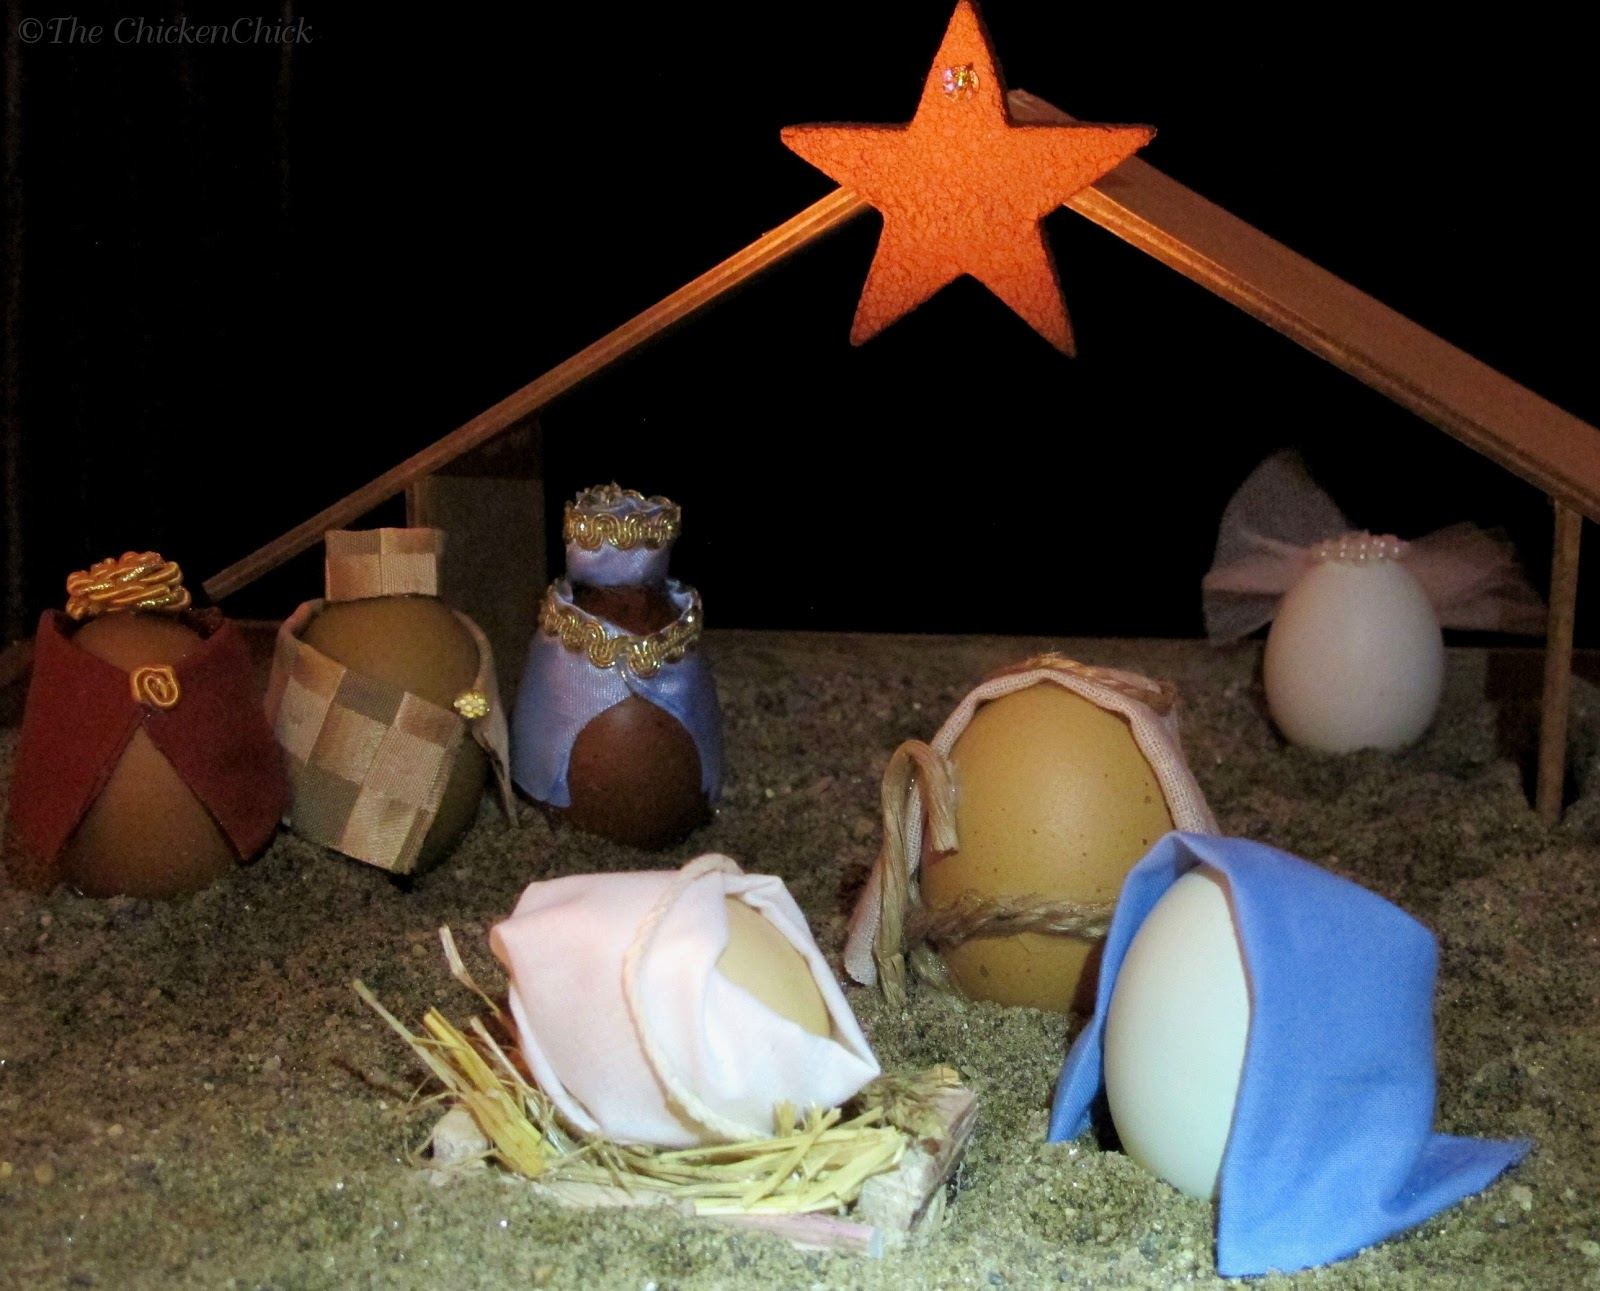 Diy blown egg nativity scene the reason for the season the diy blown egg nativity scene the reason for the season the chicken chick solutioingenieria Images